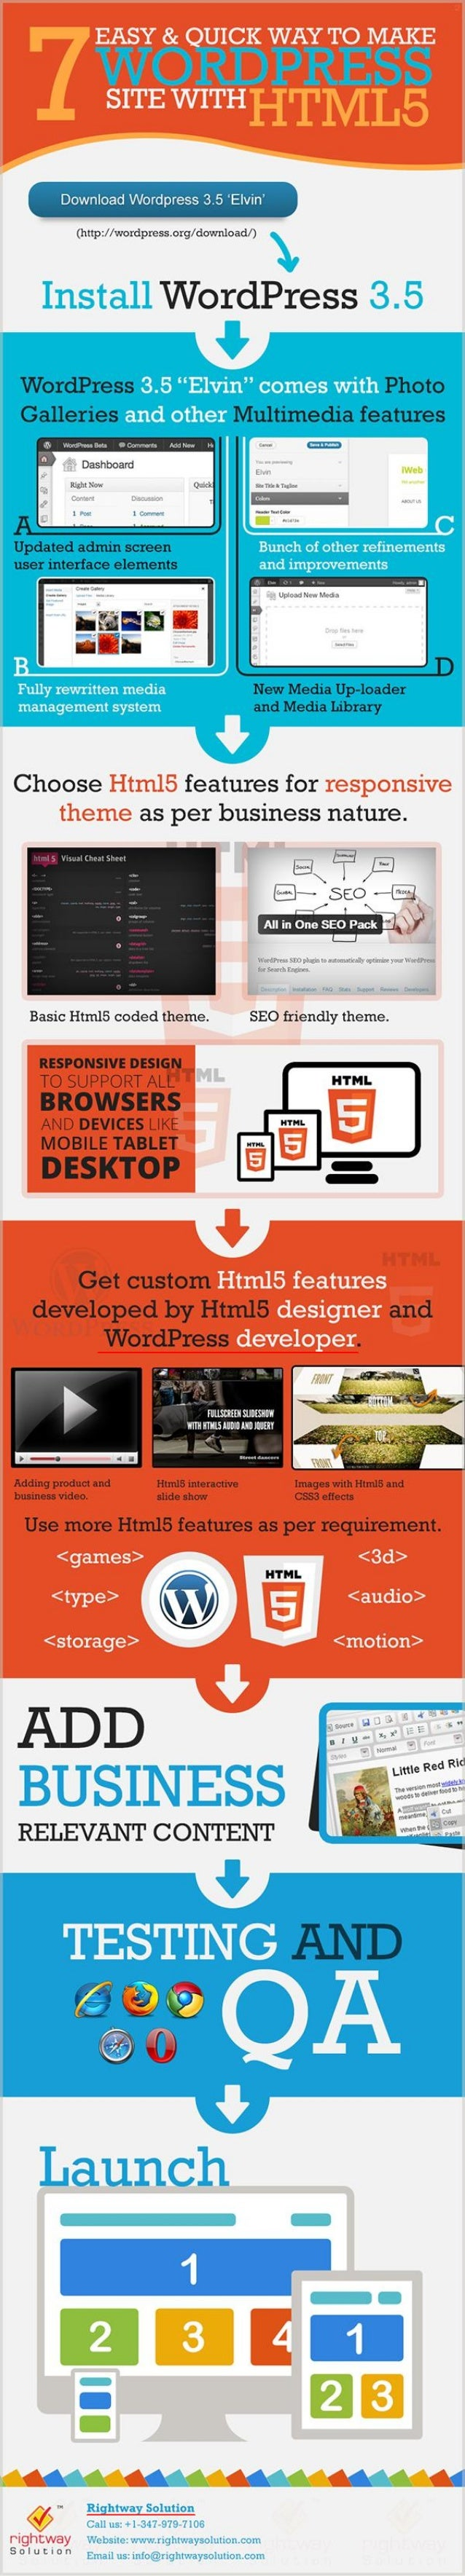 steps To make WordPress website With HTML5